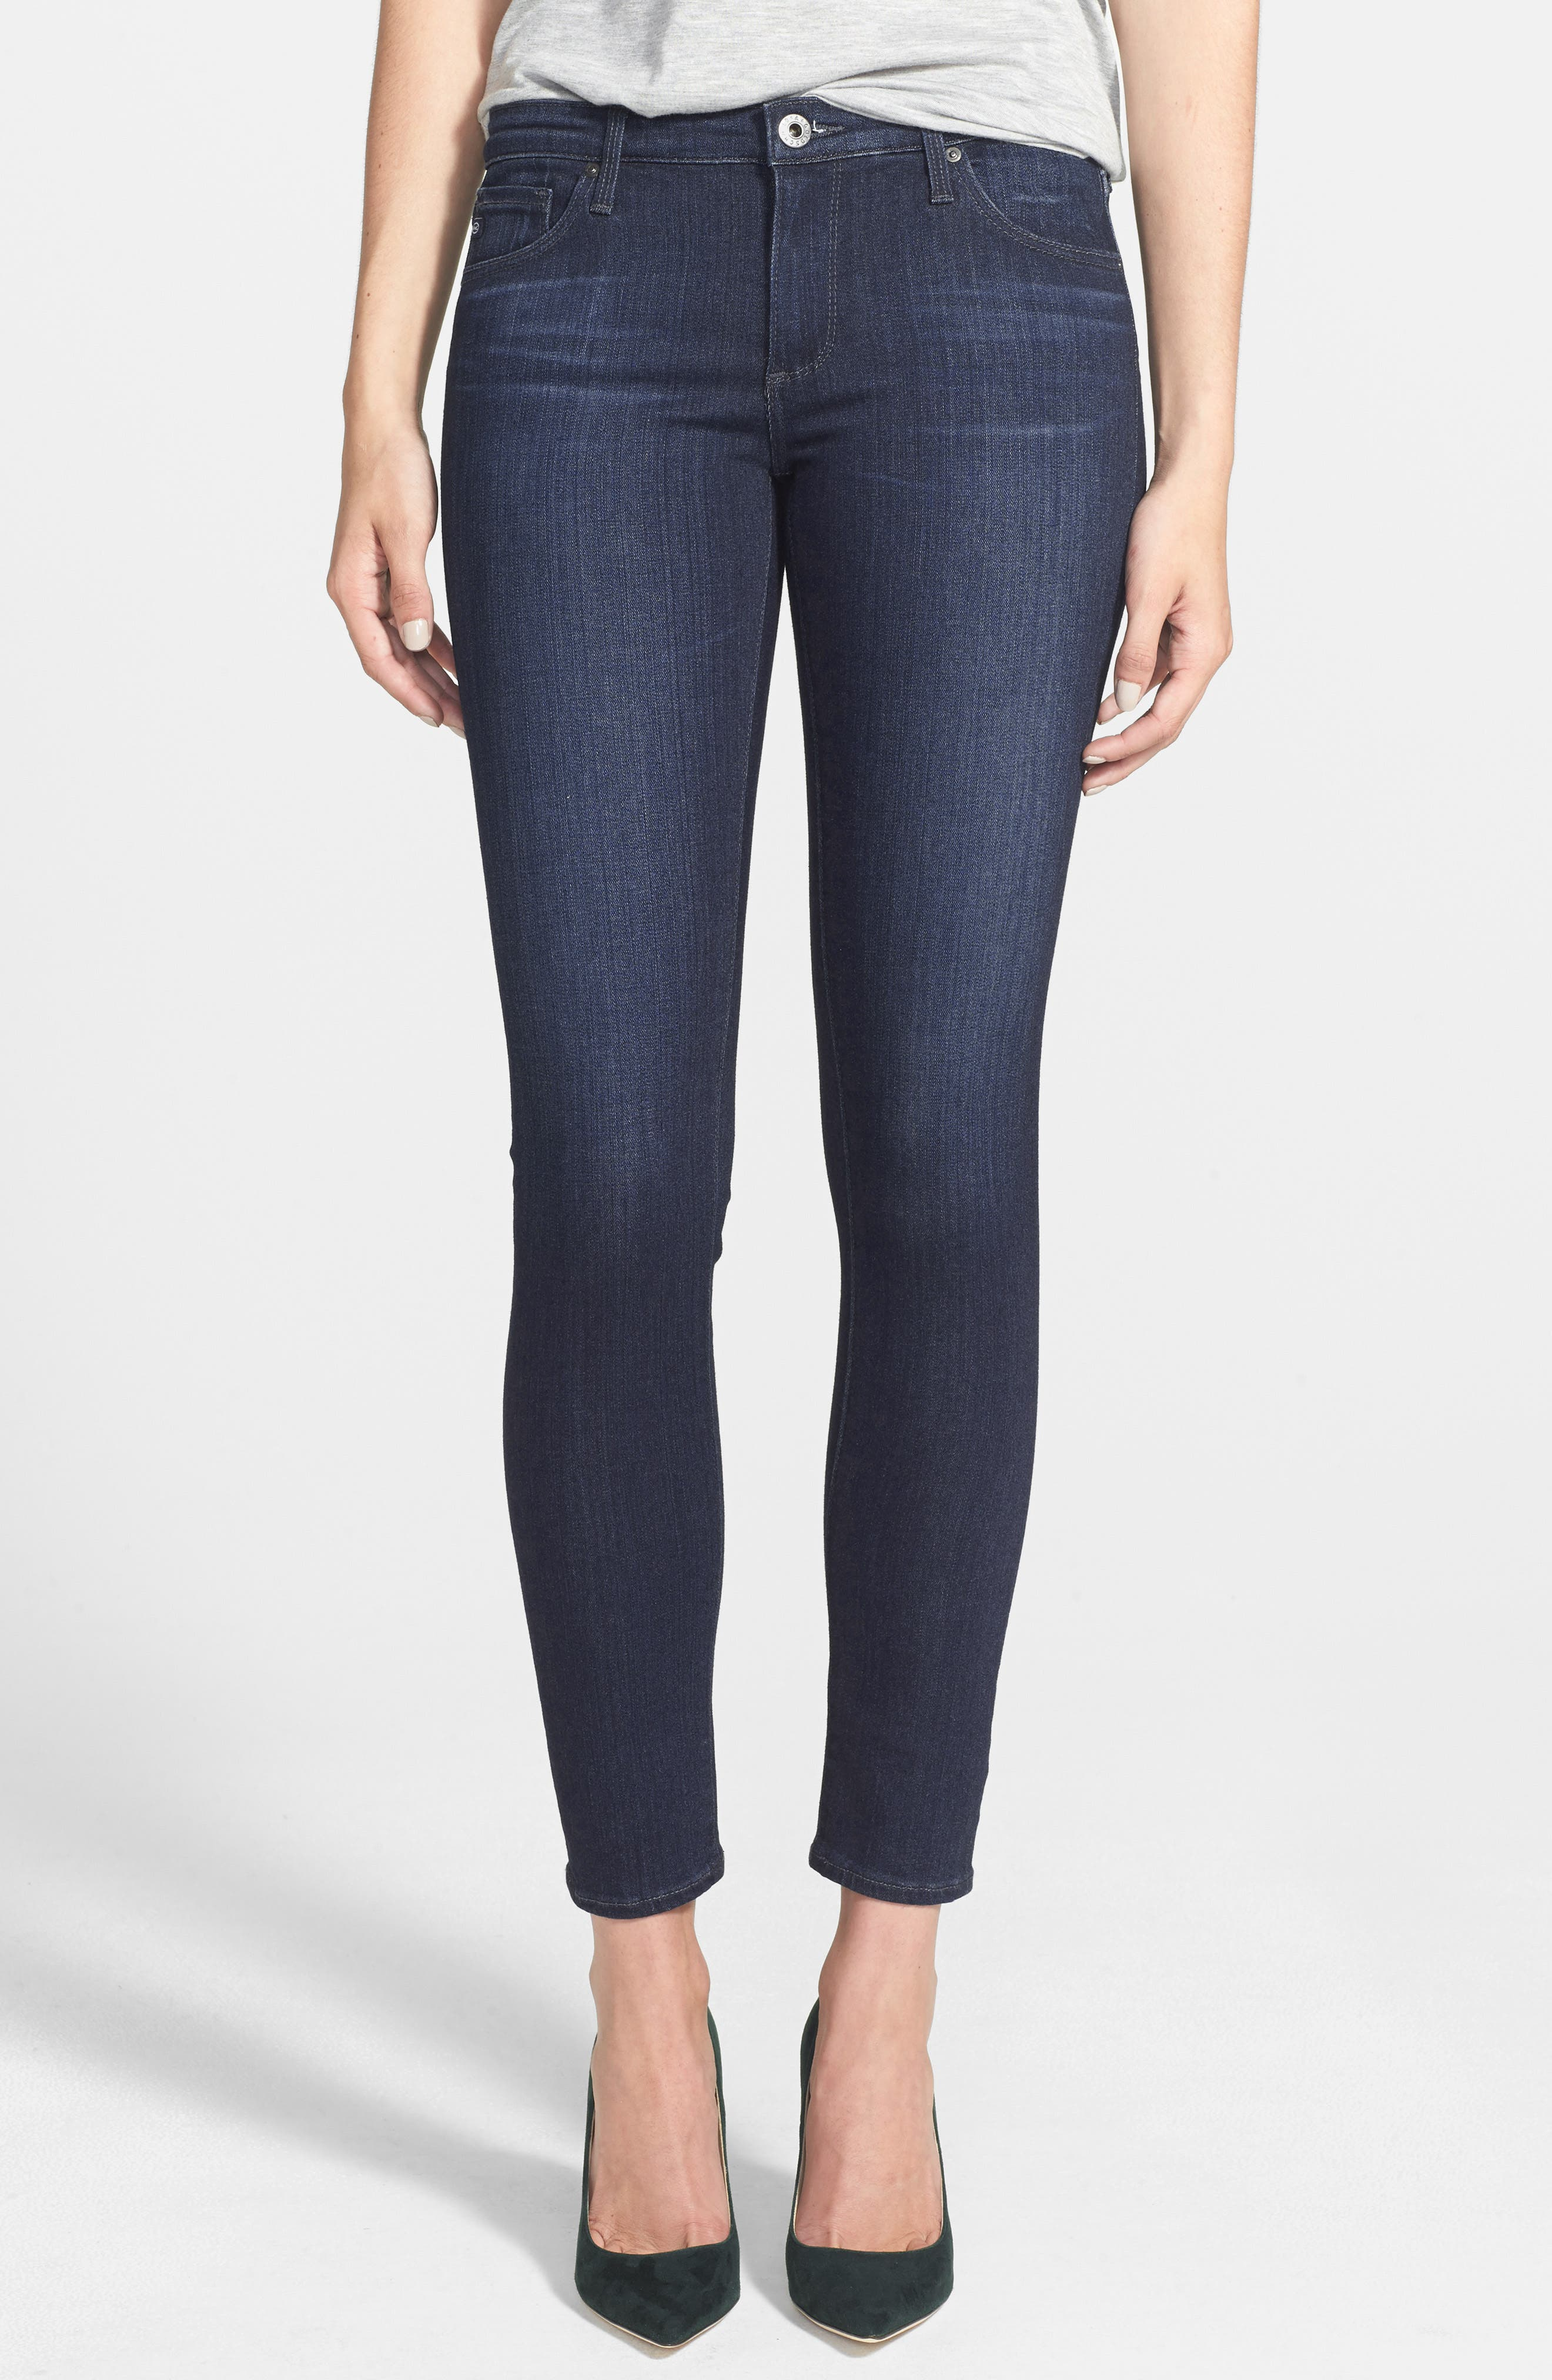 AG The Legging Ankle Super Skinny Jeans, Main, color, COAL BLUE